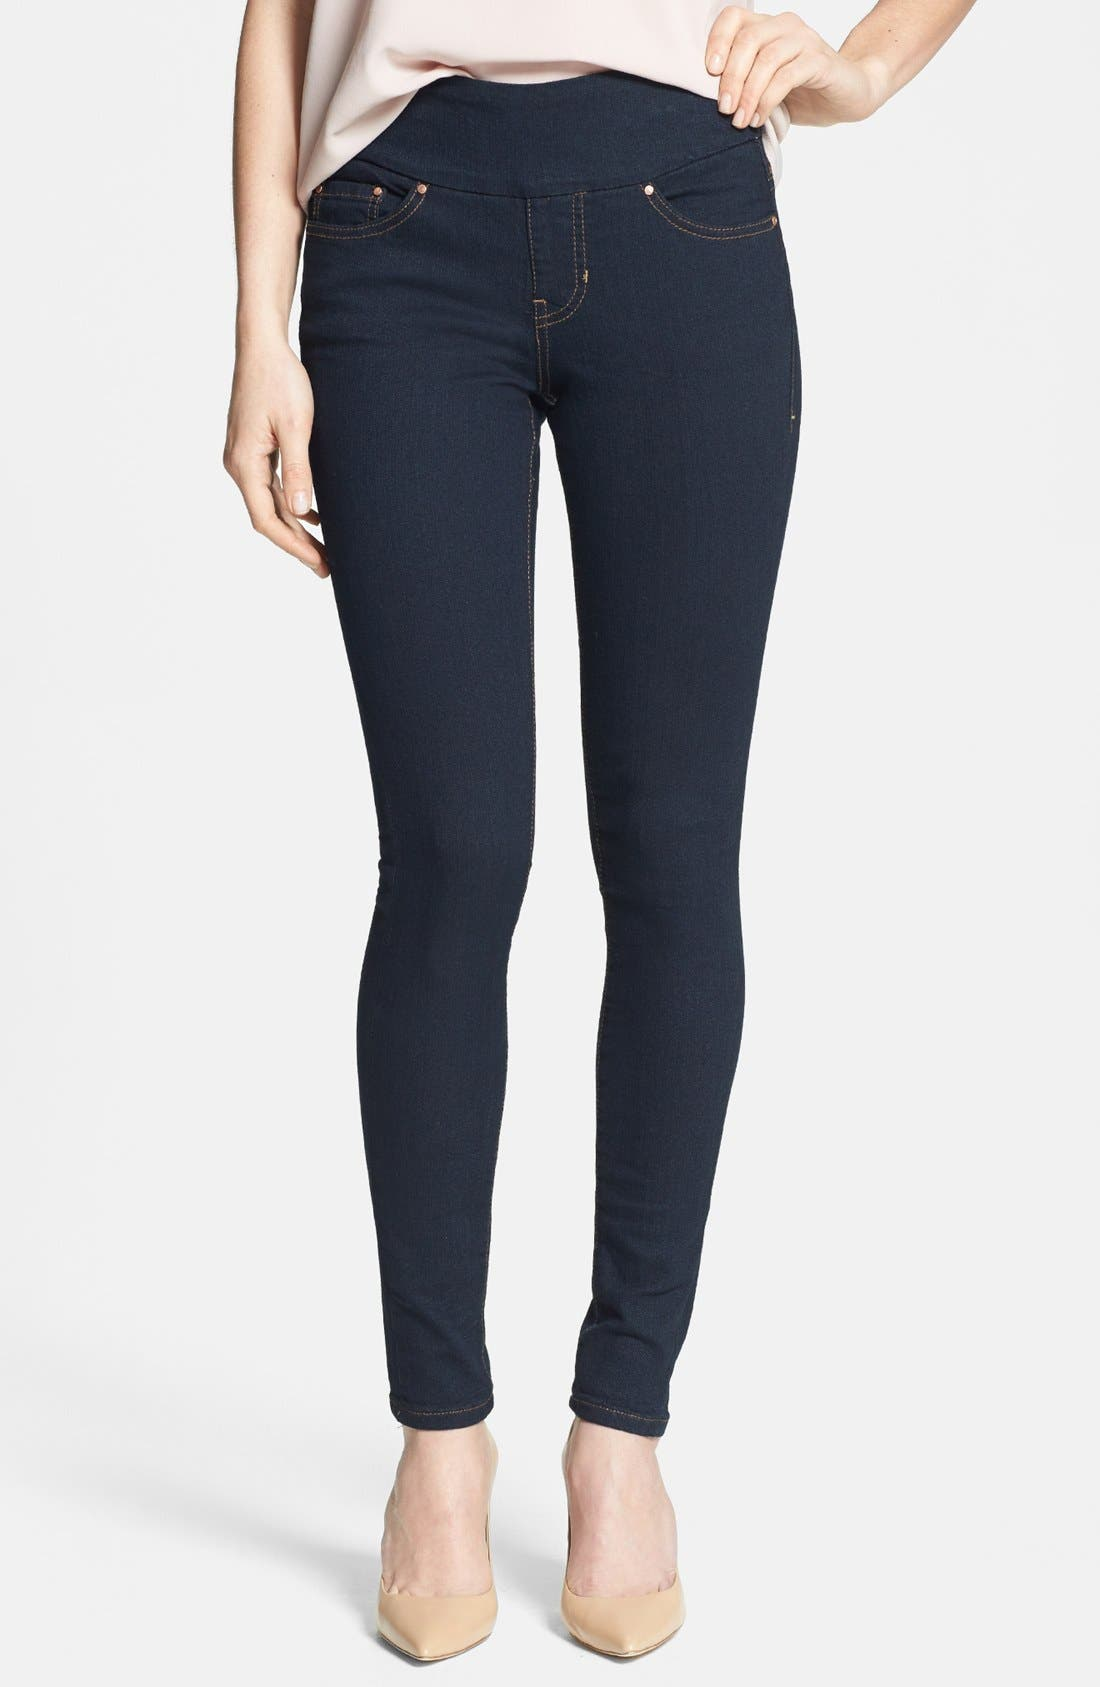 JAG JEANS 'Nora' Pull-On Skinny Stretch Jeans